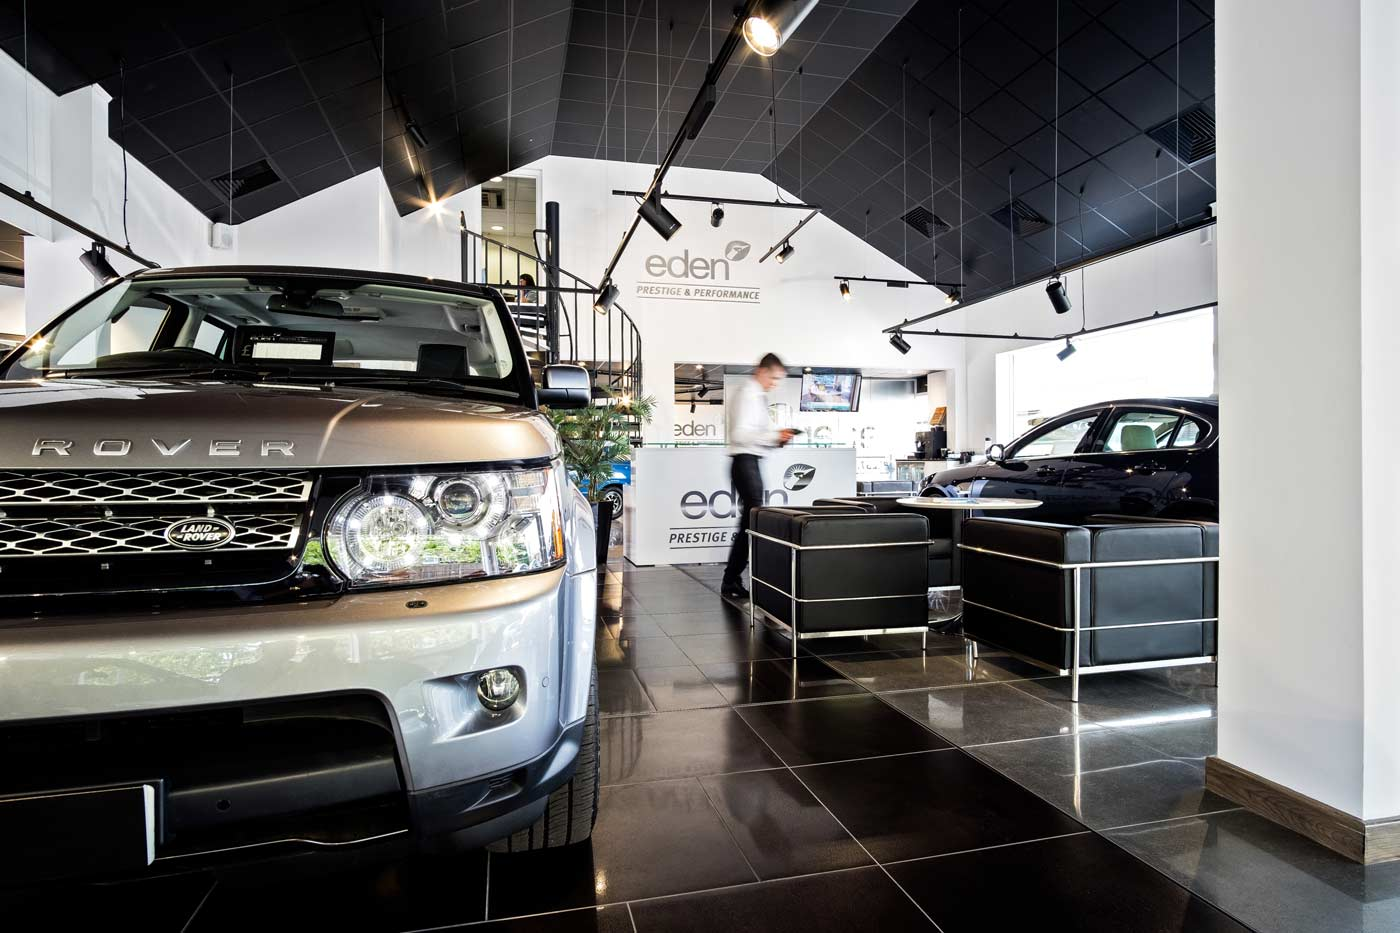 Interior photograph of Eden Prestige & Performance cars showroom